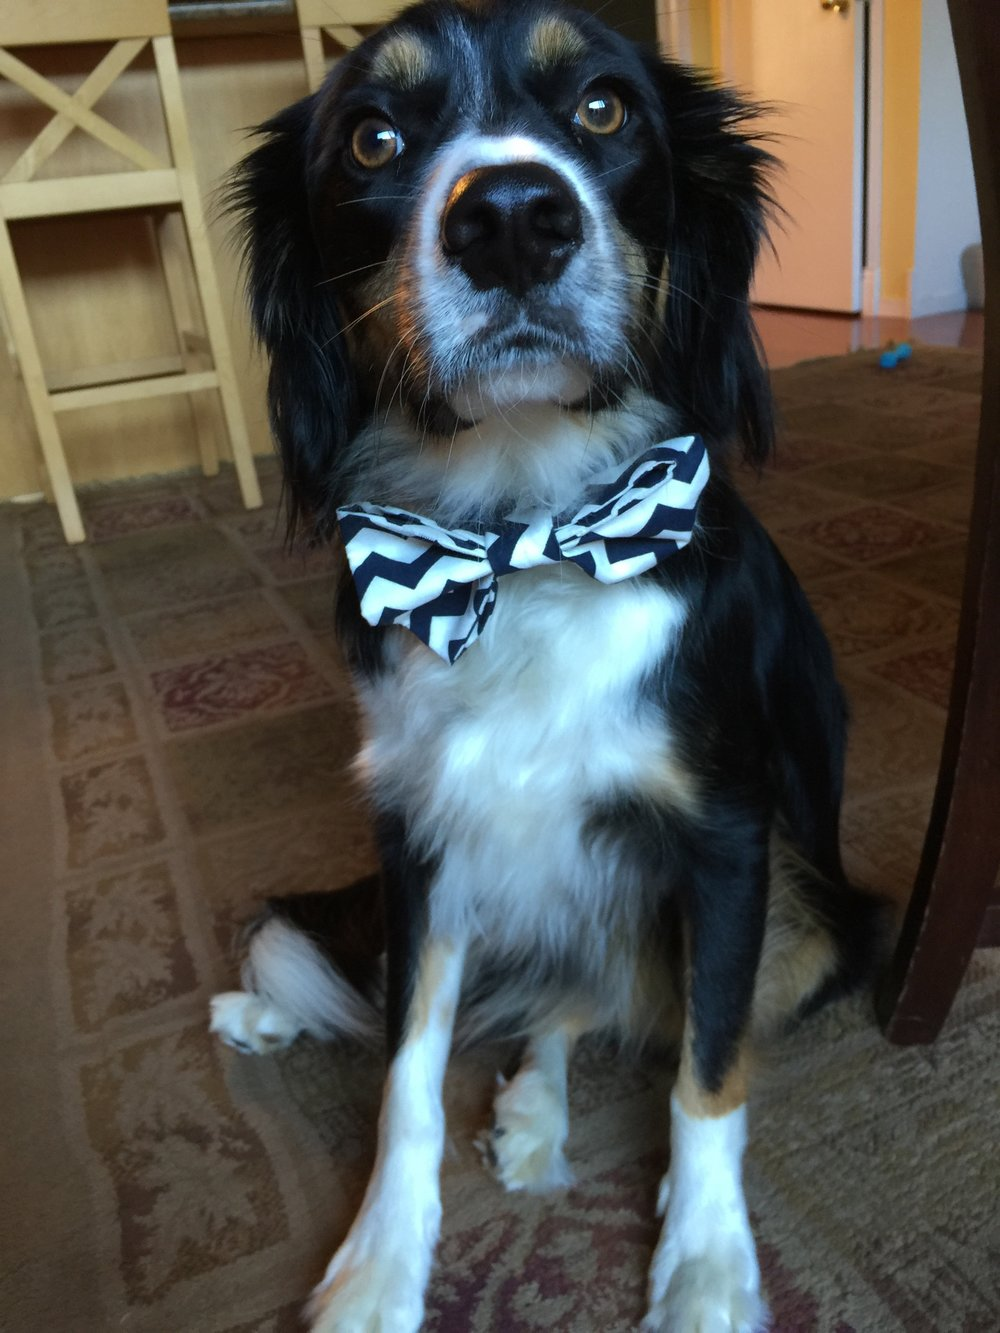 Pancake putting up with my dog bow tie sewing lesson